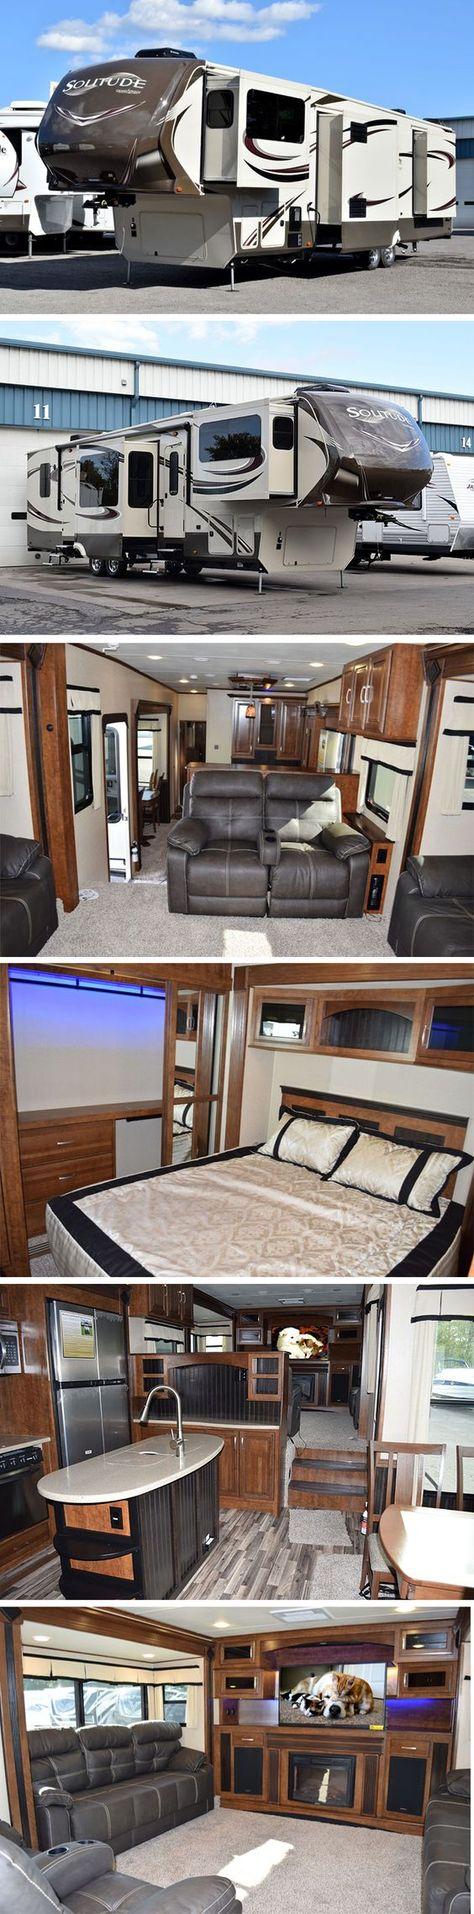 2015 new grand design solitude 366den fifth wheel in ohio oh recreational vehicle rv 2015 grand design solitude 366den get your once in a lifeti